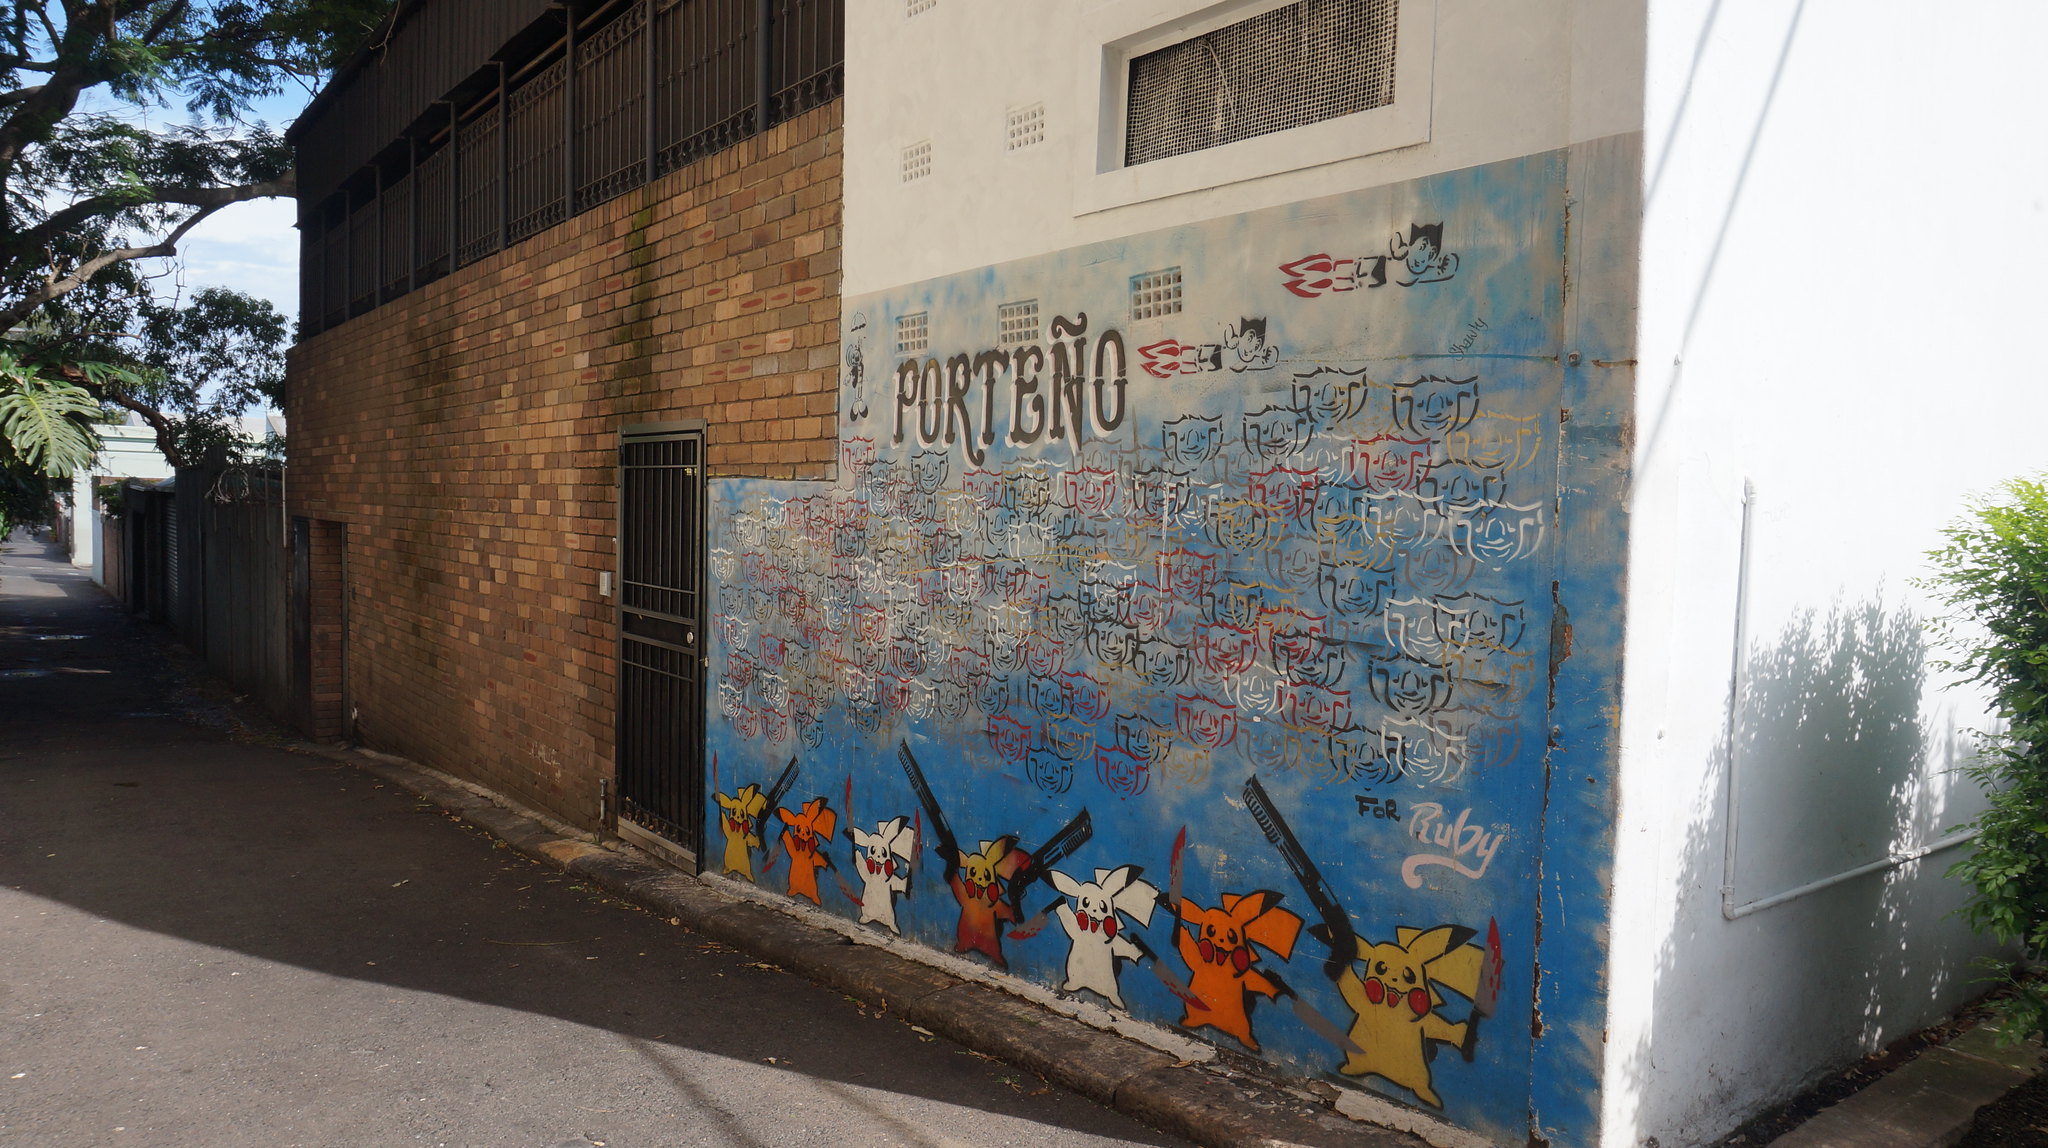 Pokemon and Porteno